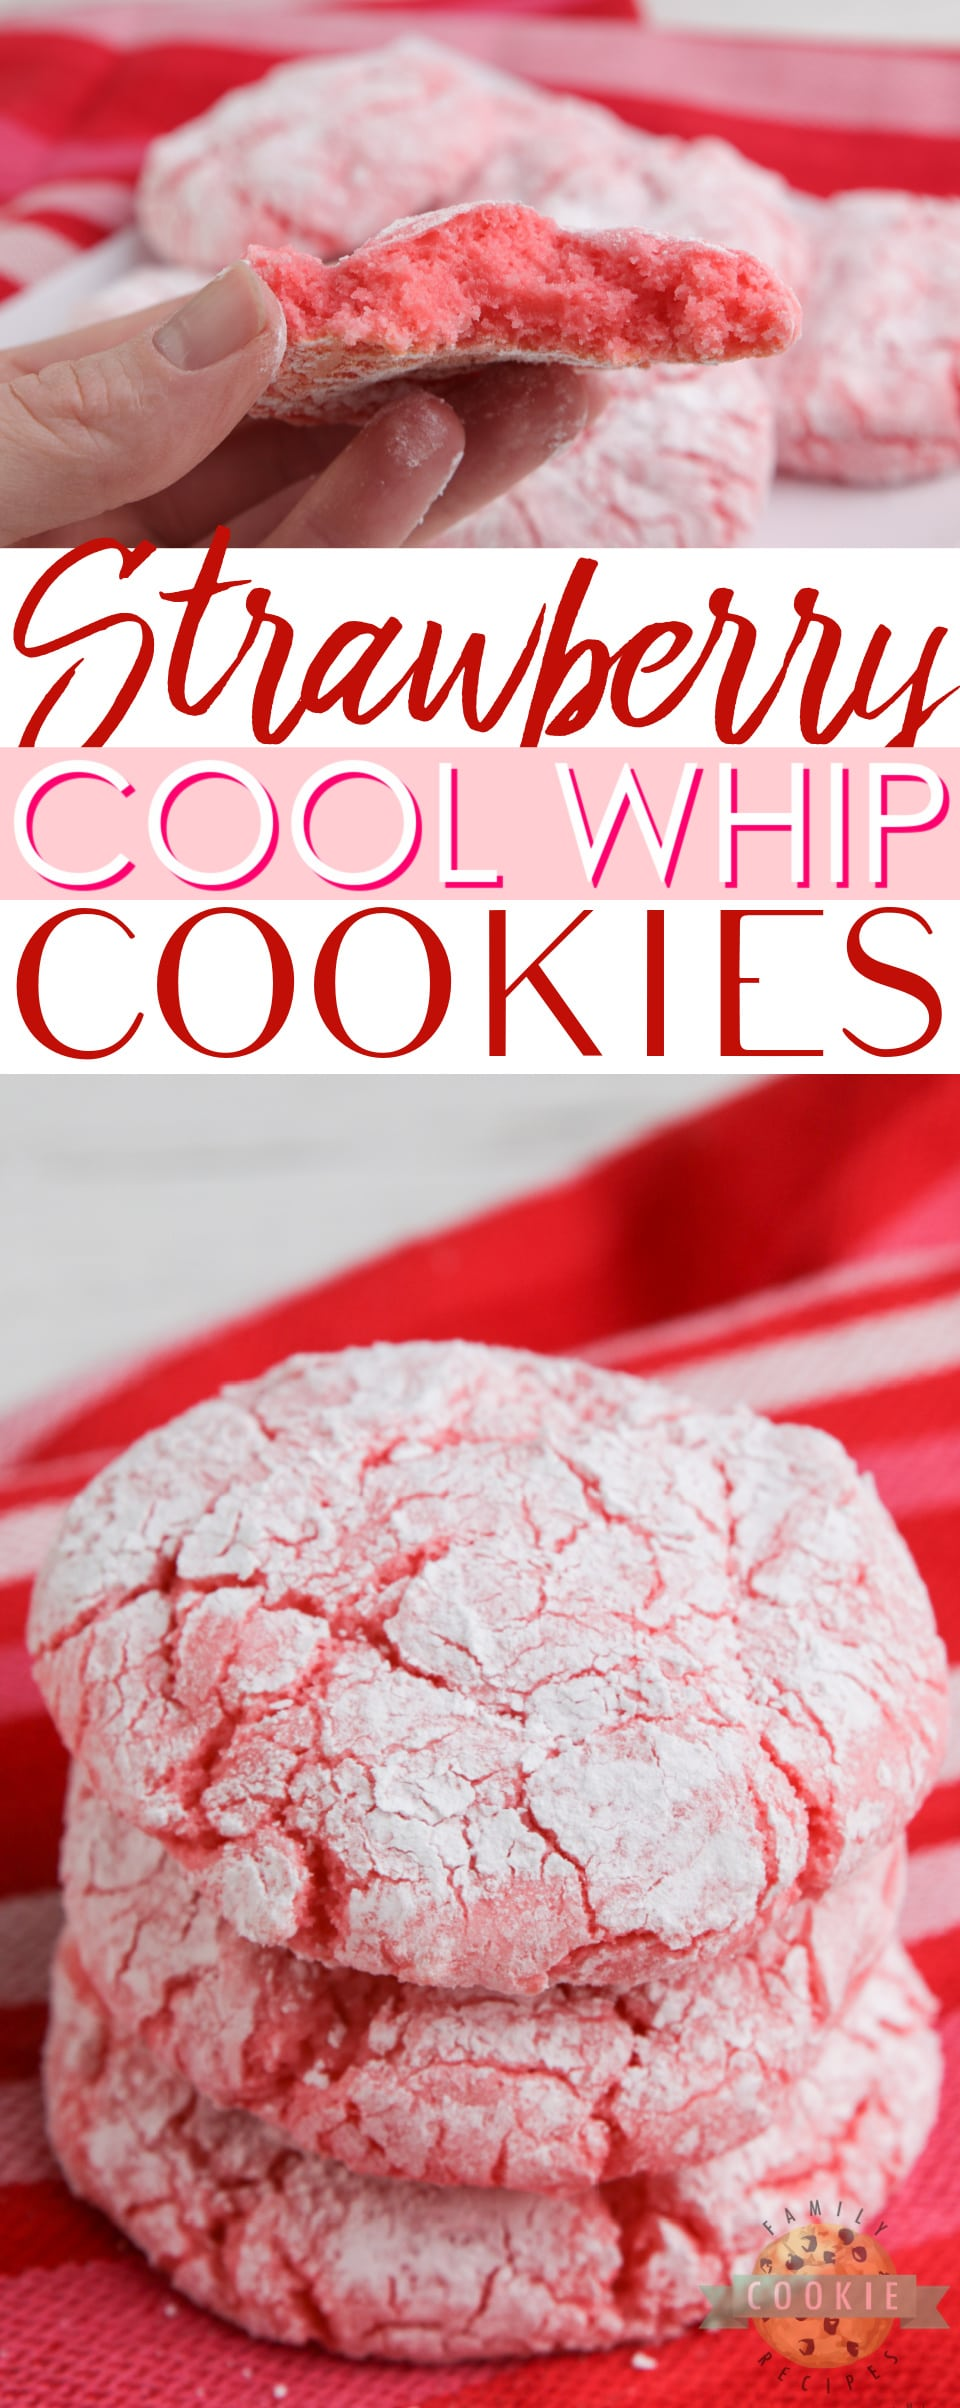 Strawberry Cool Whip Cookies made with a strawberry cake mix, Cool Whip and an egg. A lighter cookie recipe that is easy to make and with less calories than traditional cake mix cookies! via @familycookierecipes